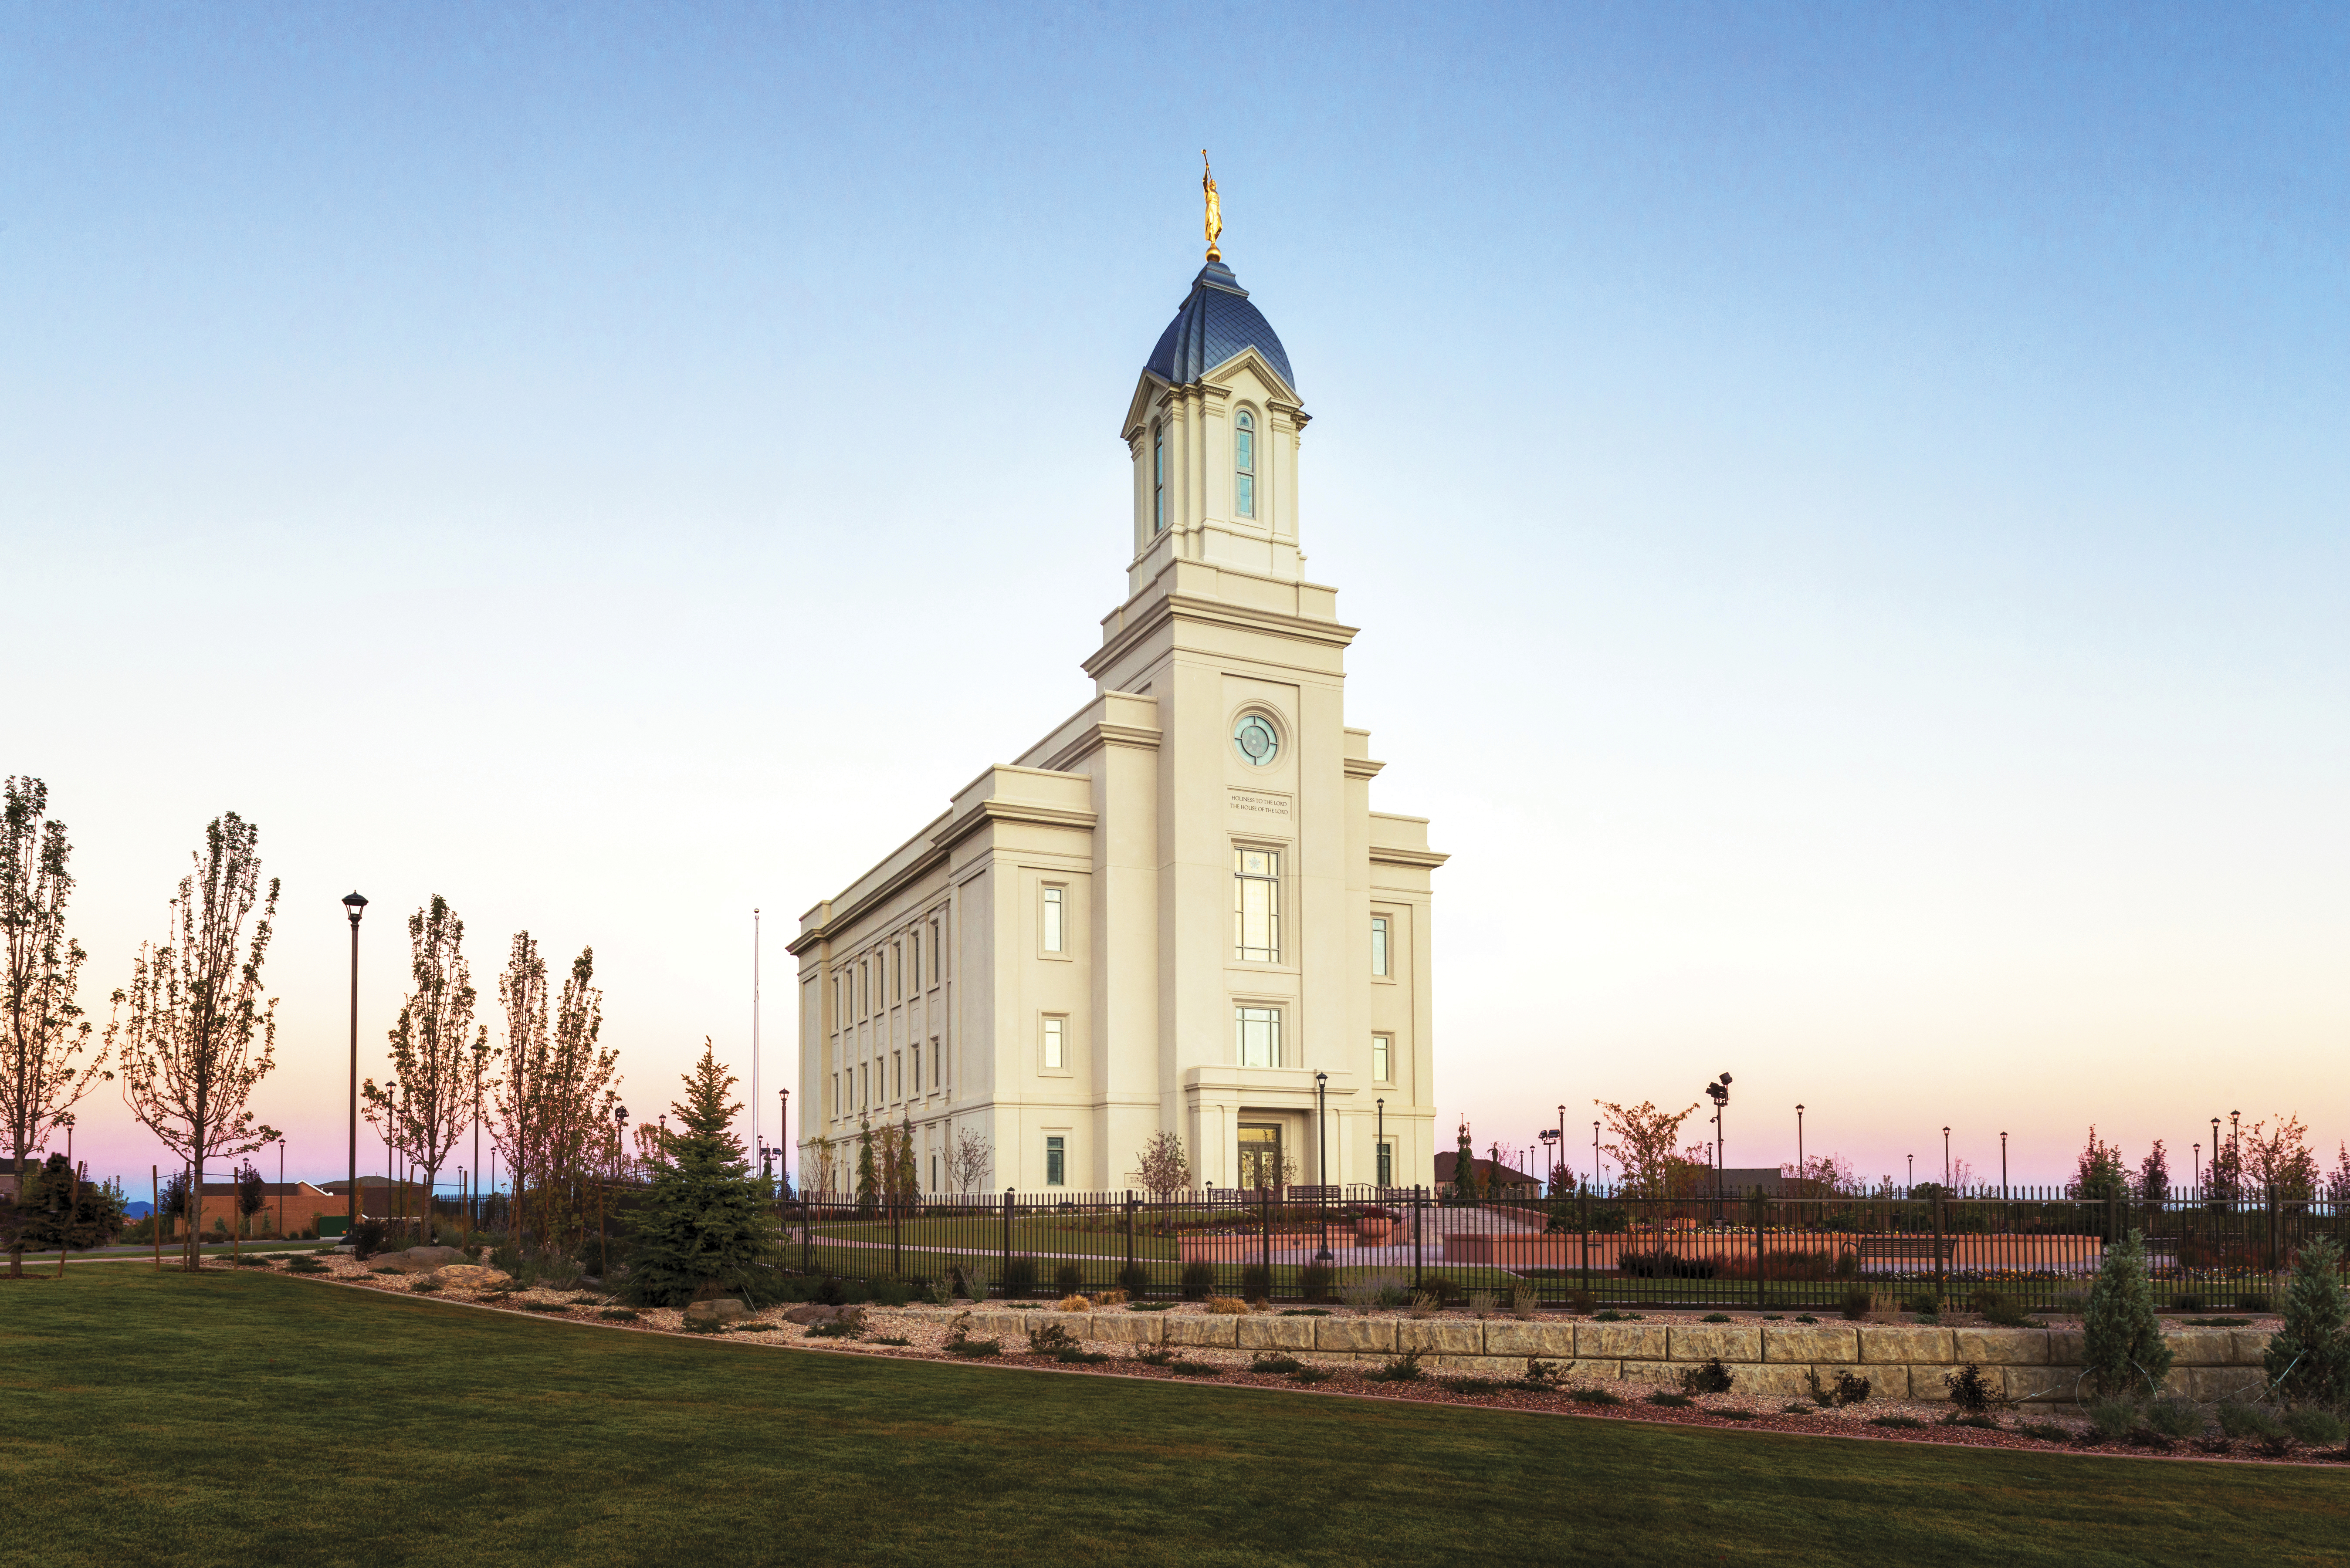 The exterior of the Cedar City Utah Temple at sunset.